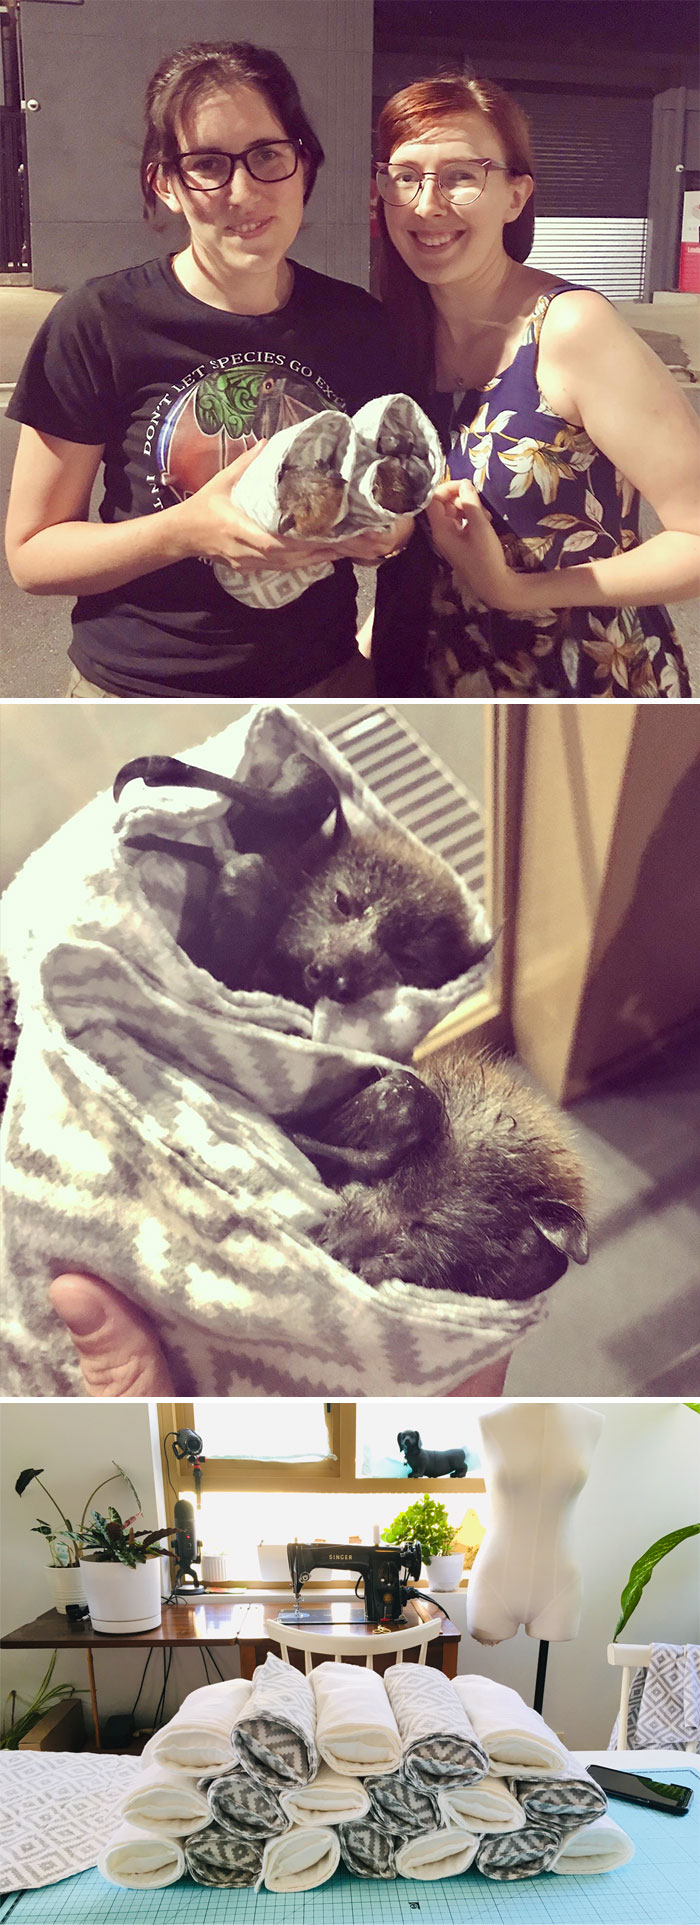 Tonight I Got To Meet The Baby Orphan Bats Of The Aussie Bushfires That I Made The Wraps For